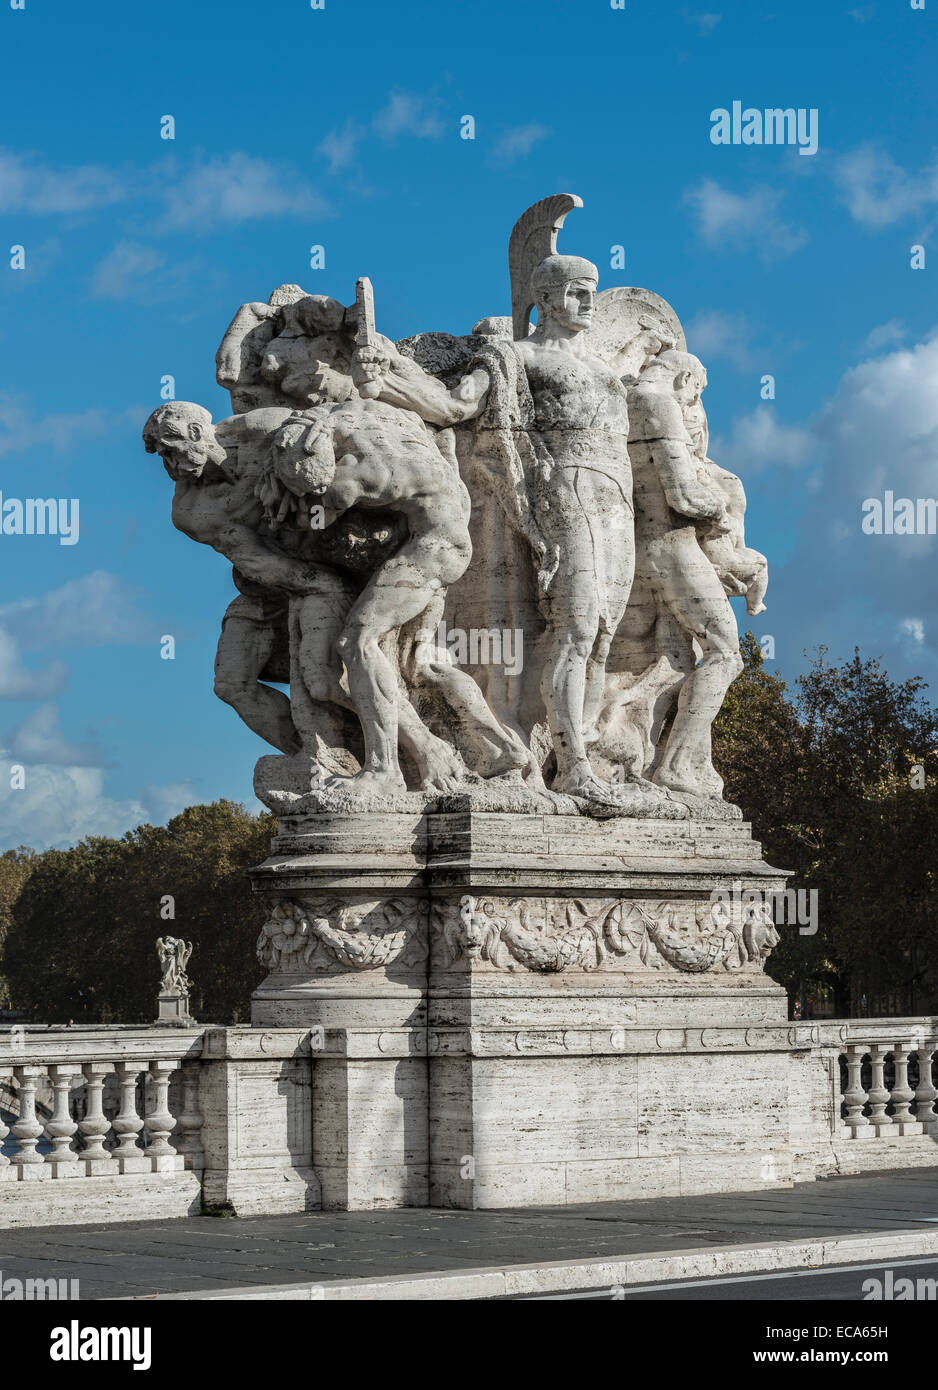 Il Valore Militare, marble sculpture, by Italo Orlando Griselli, 1910, allegorical group, victory of the Republic Stock Photo